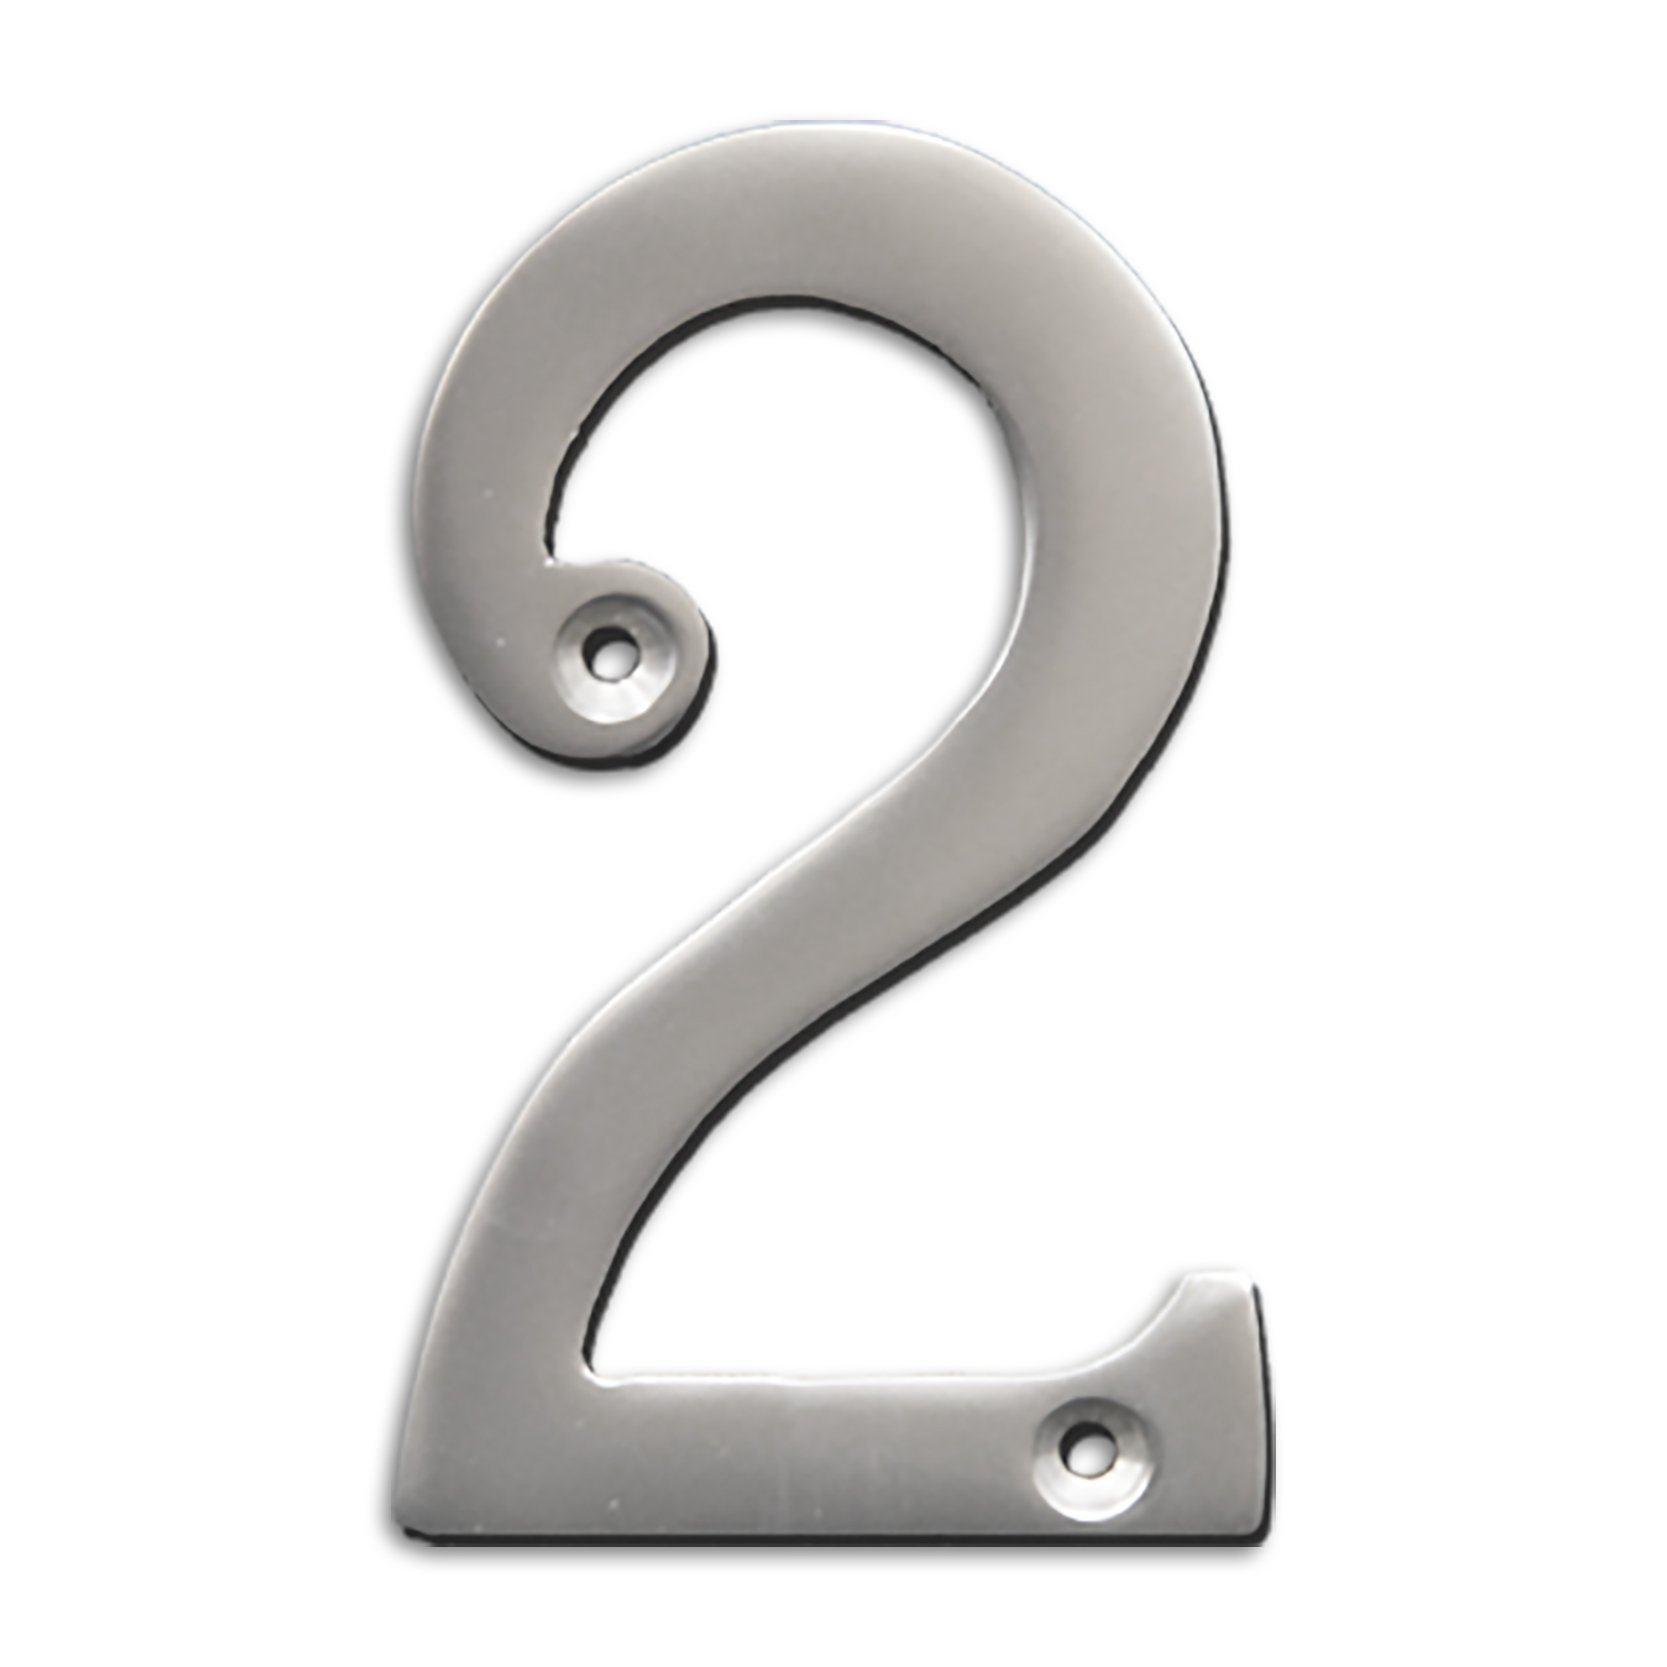 RCH Hardware Solid Brass 4'' Tall House Number 2, Satin Chrome Matte Silver Matching Screws Included by RCH Hardware